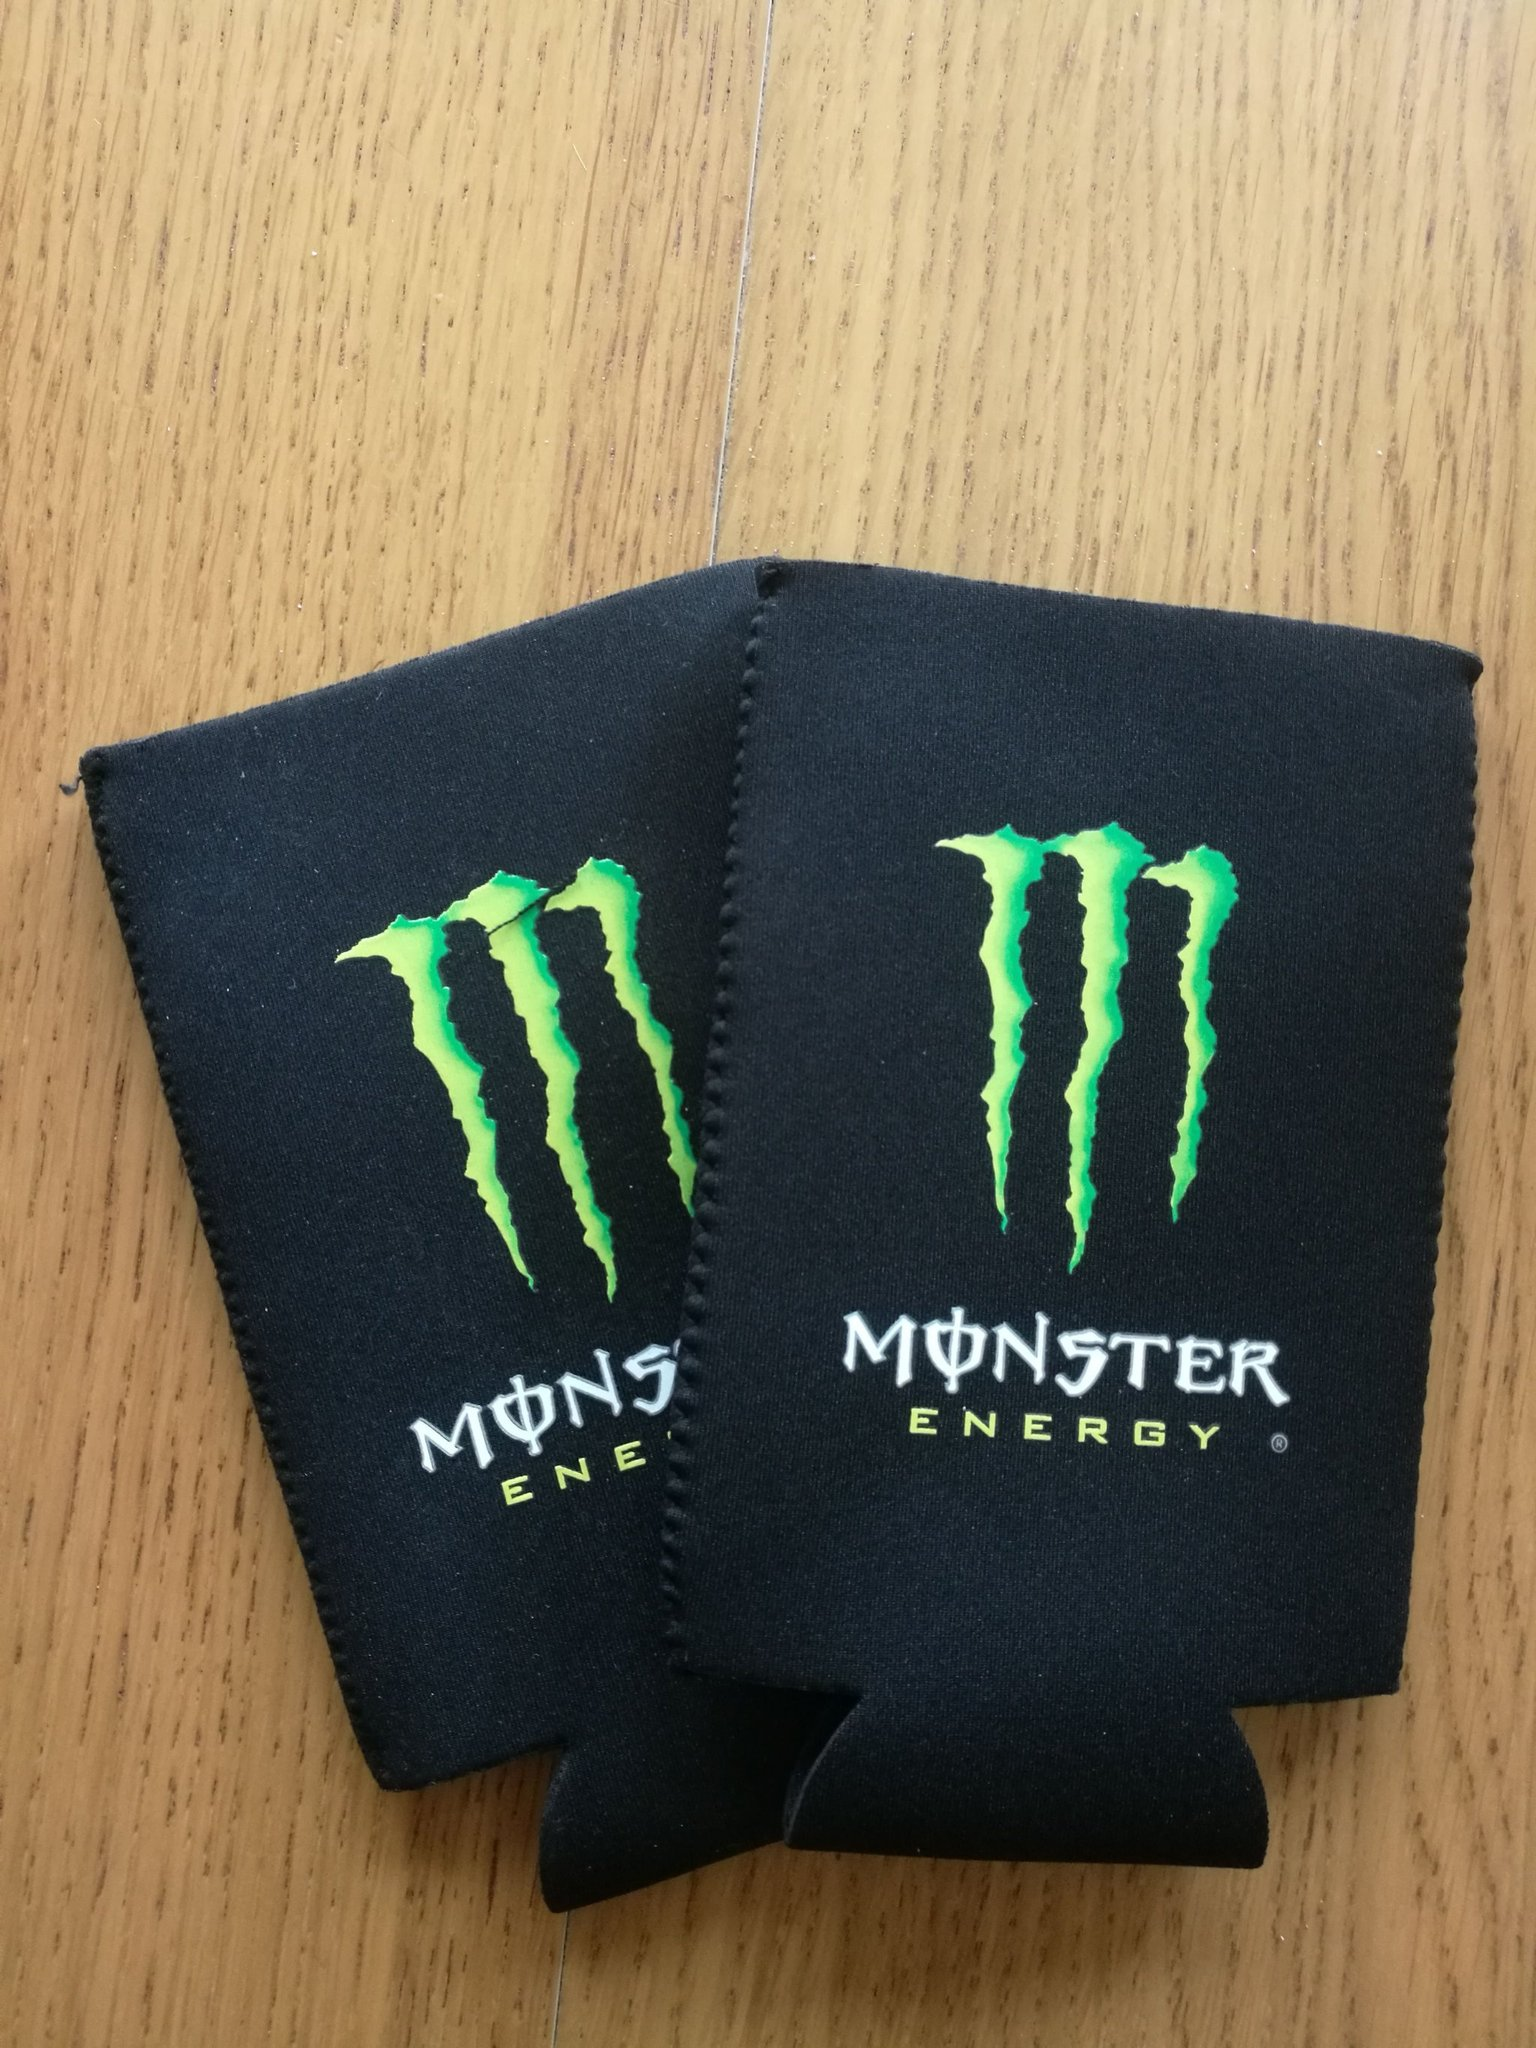 Monster Energy  - dryckeskylare